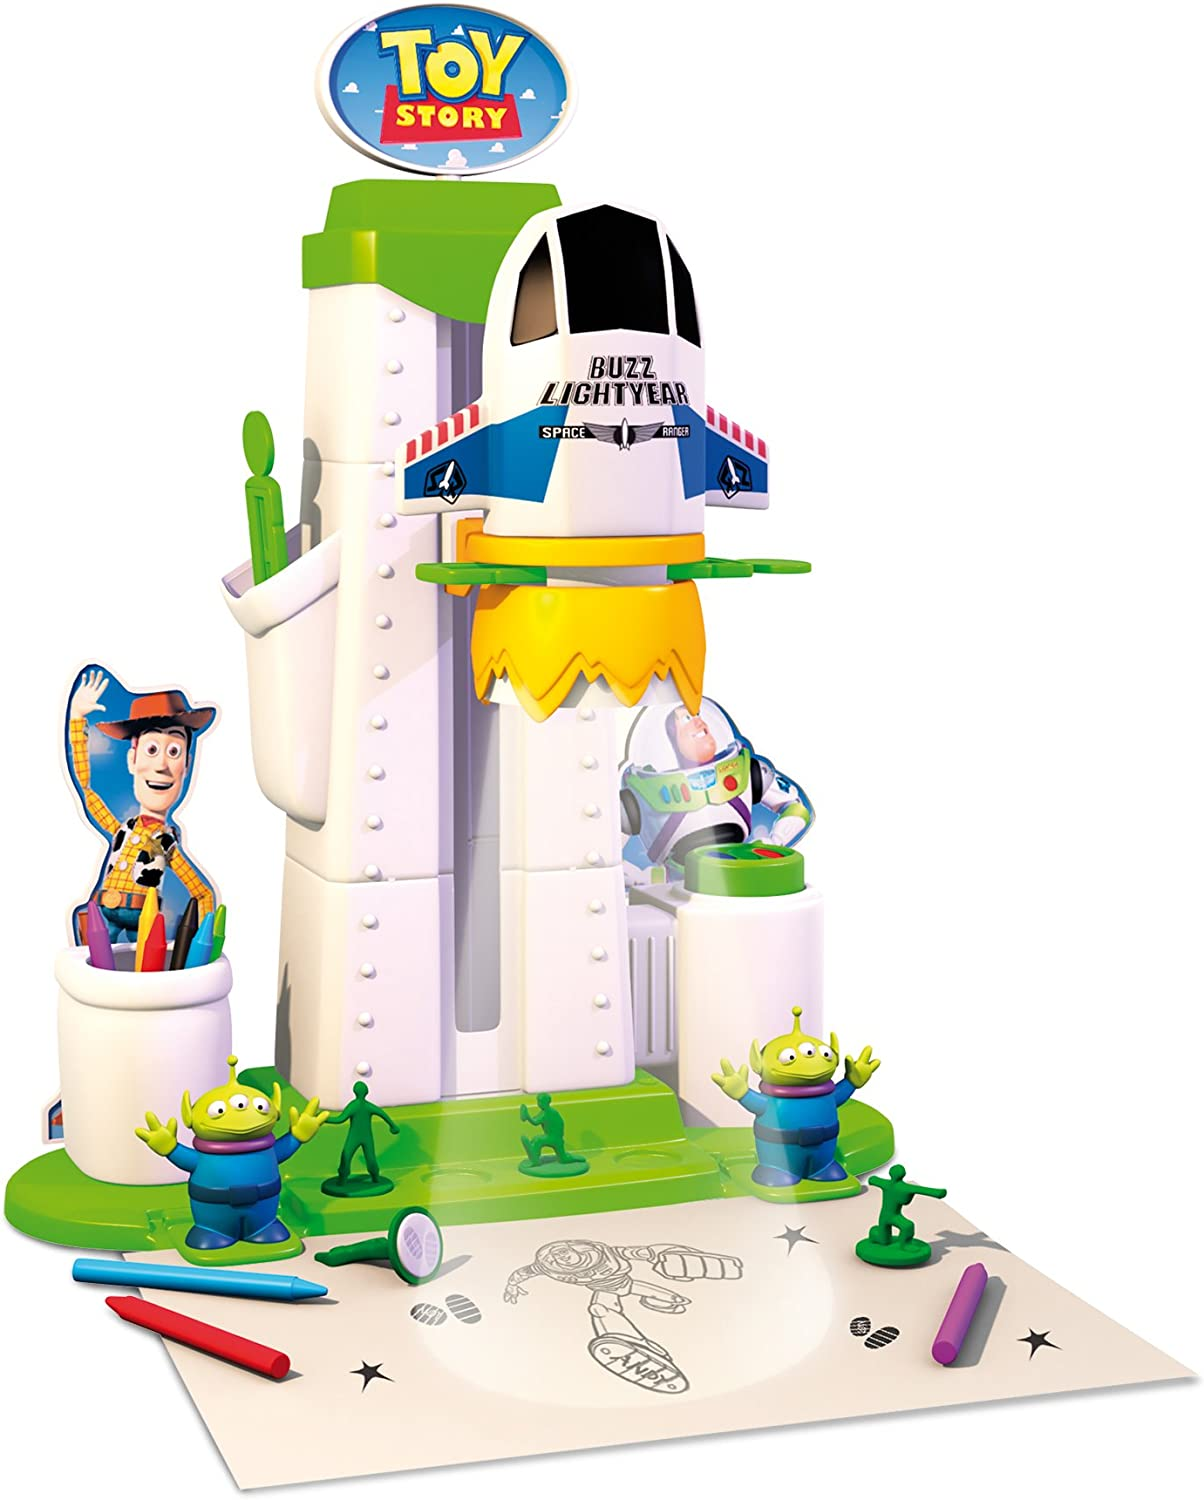 FAMOSA Proyector 3D Toy Story (700007519): Amazon.es: Juguetes y ...